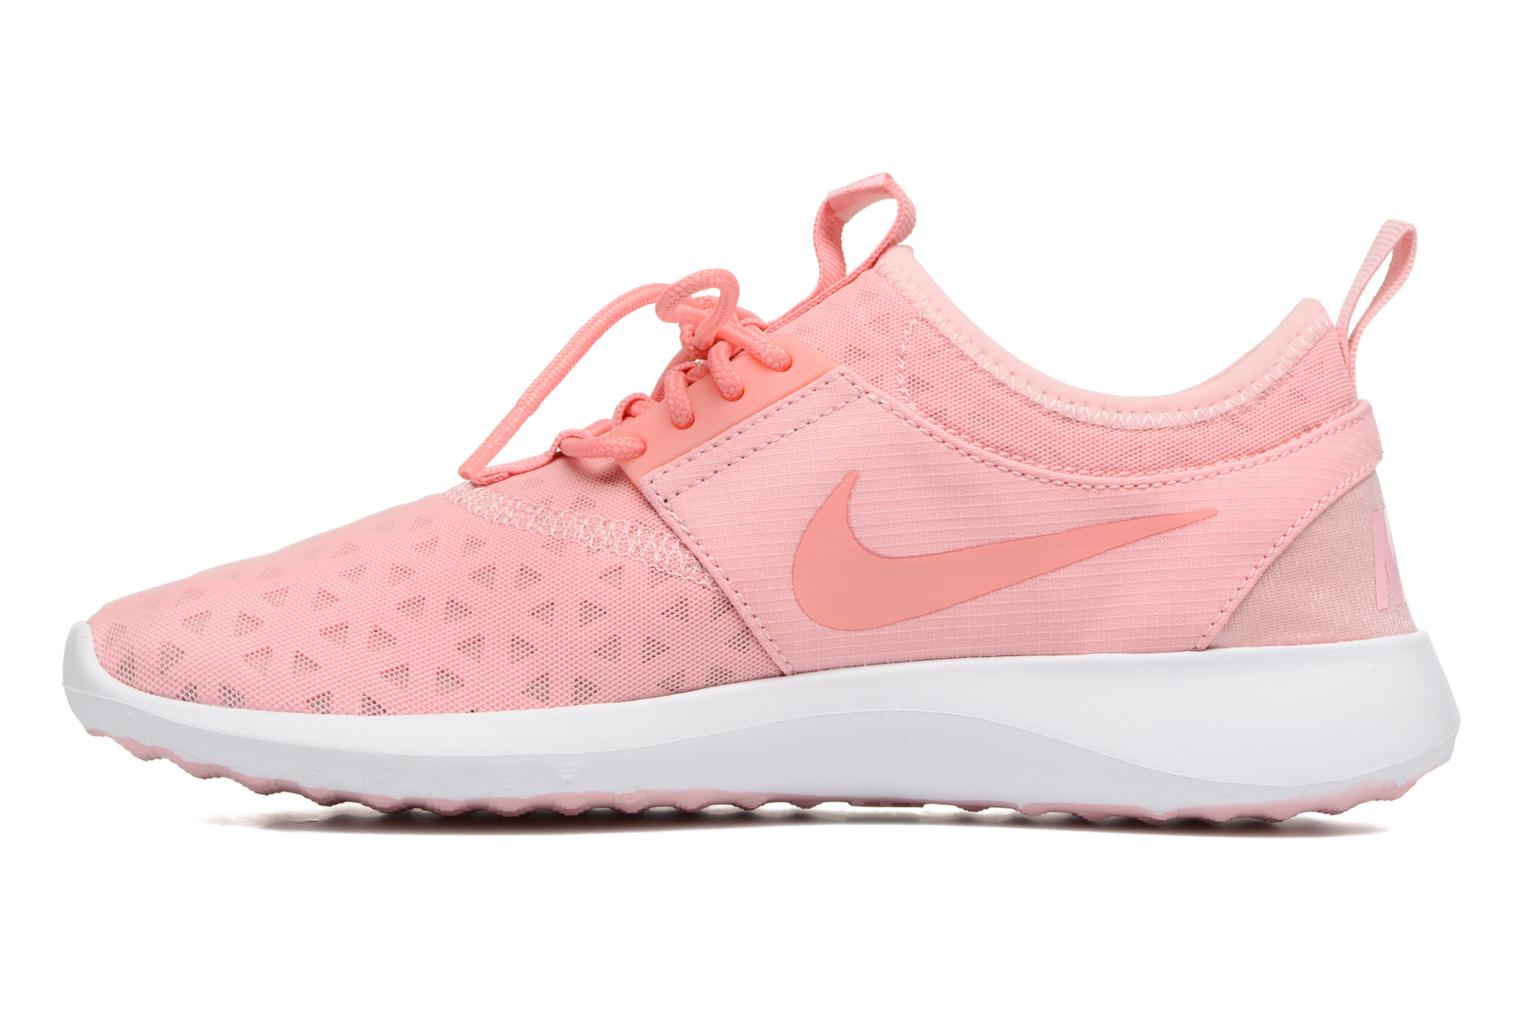 Wmns Nike Juvenate Sheen/Bright Melon-Sheen-White